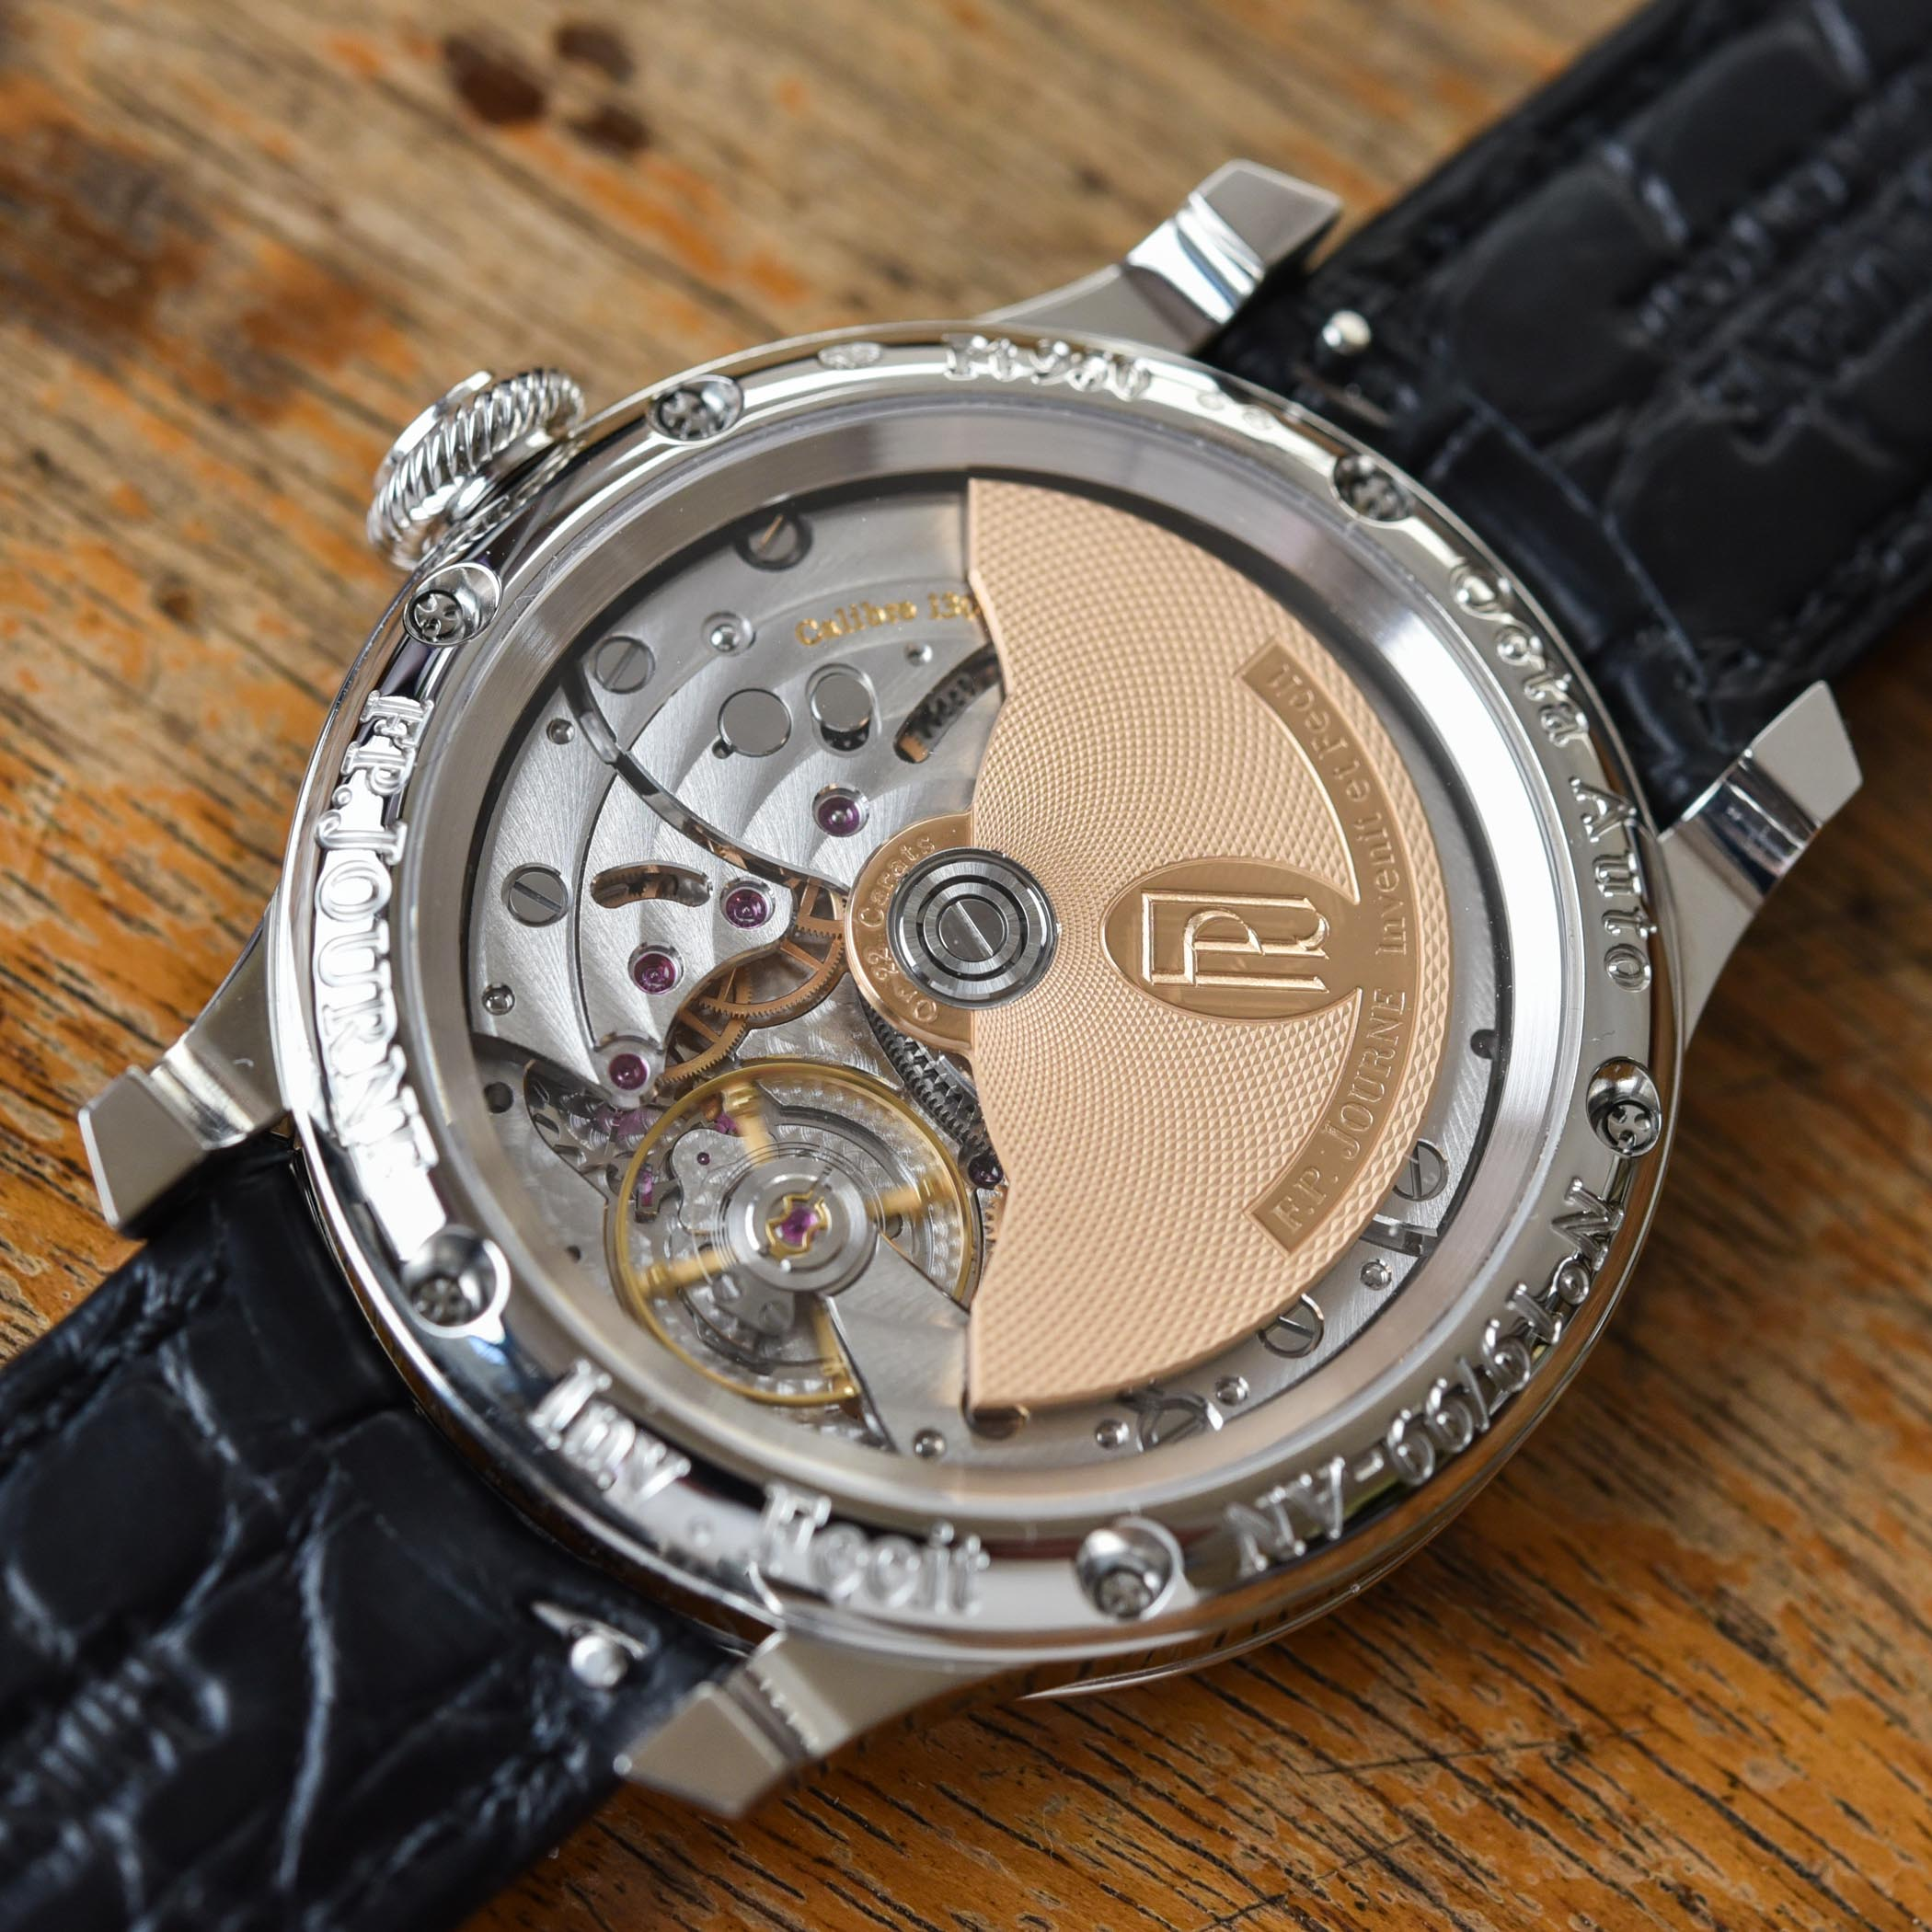 FP Journe Automatique Limited Edition 20th anniversary Octa - review - 4